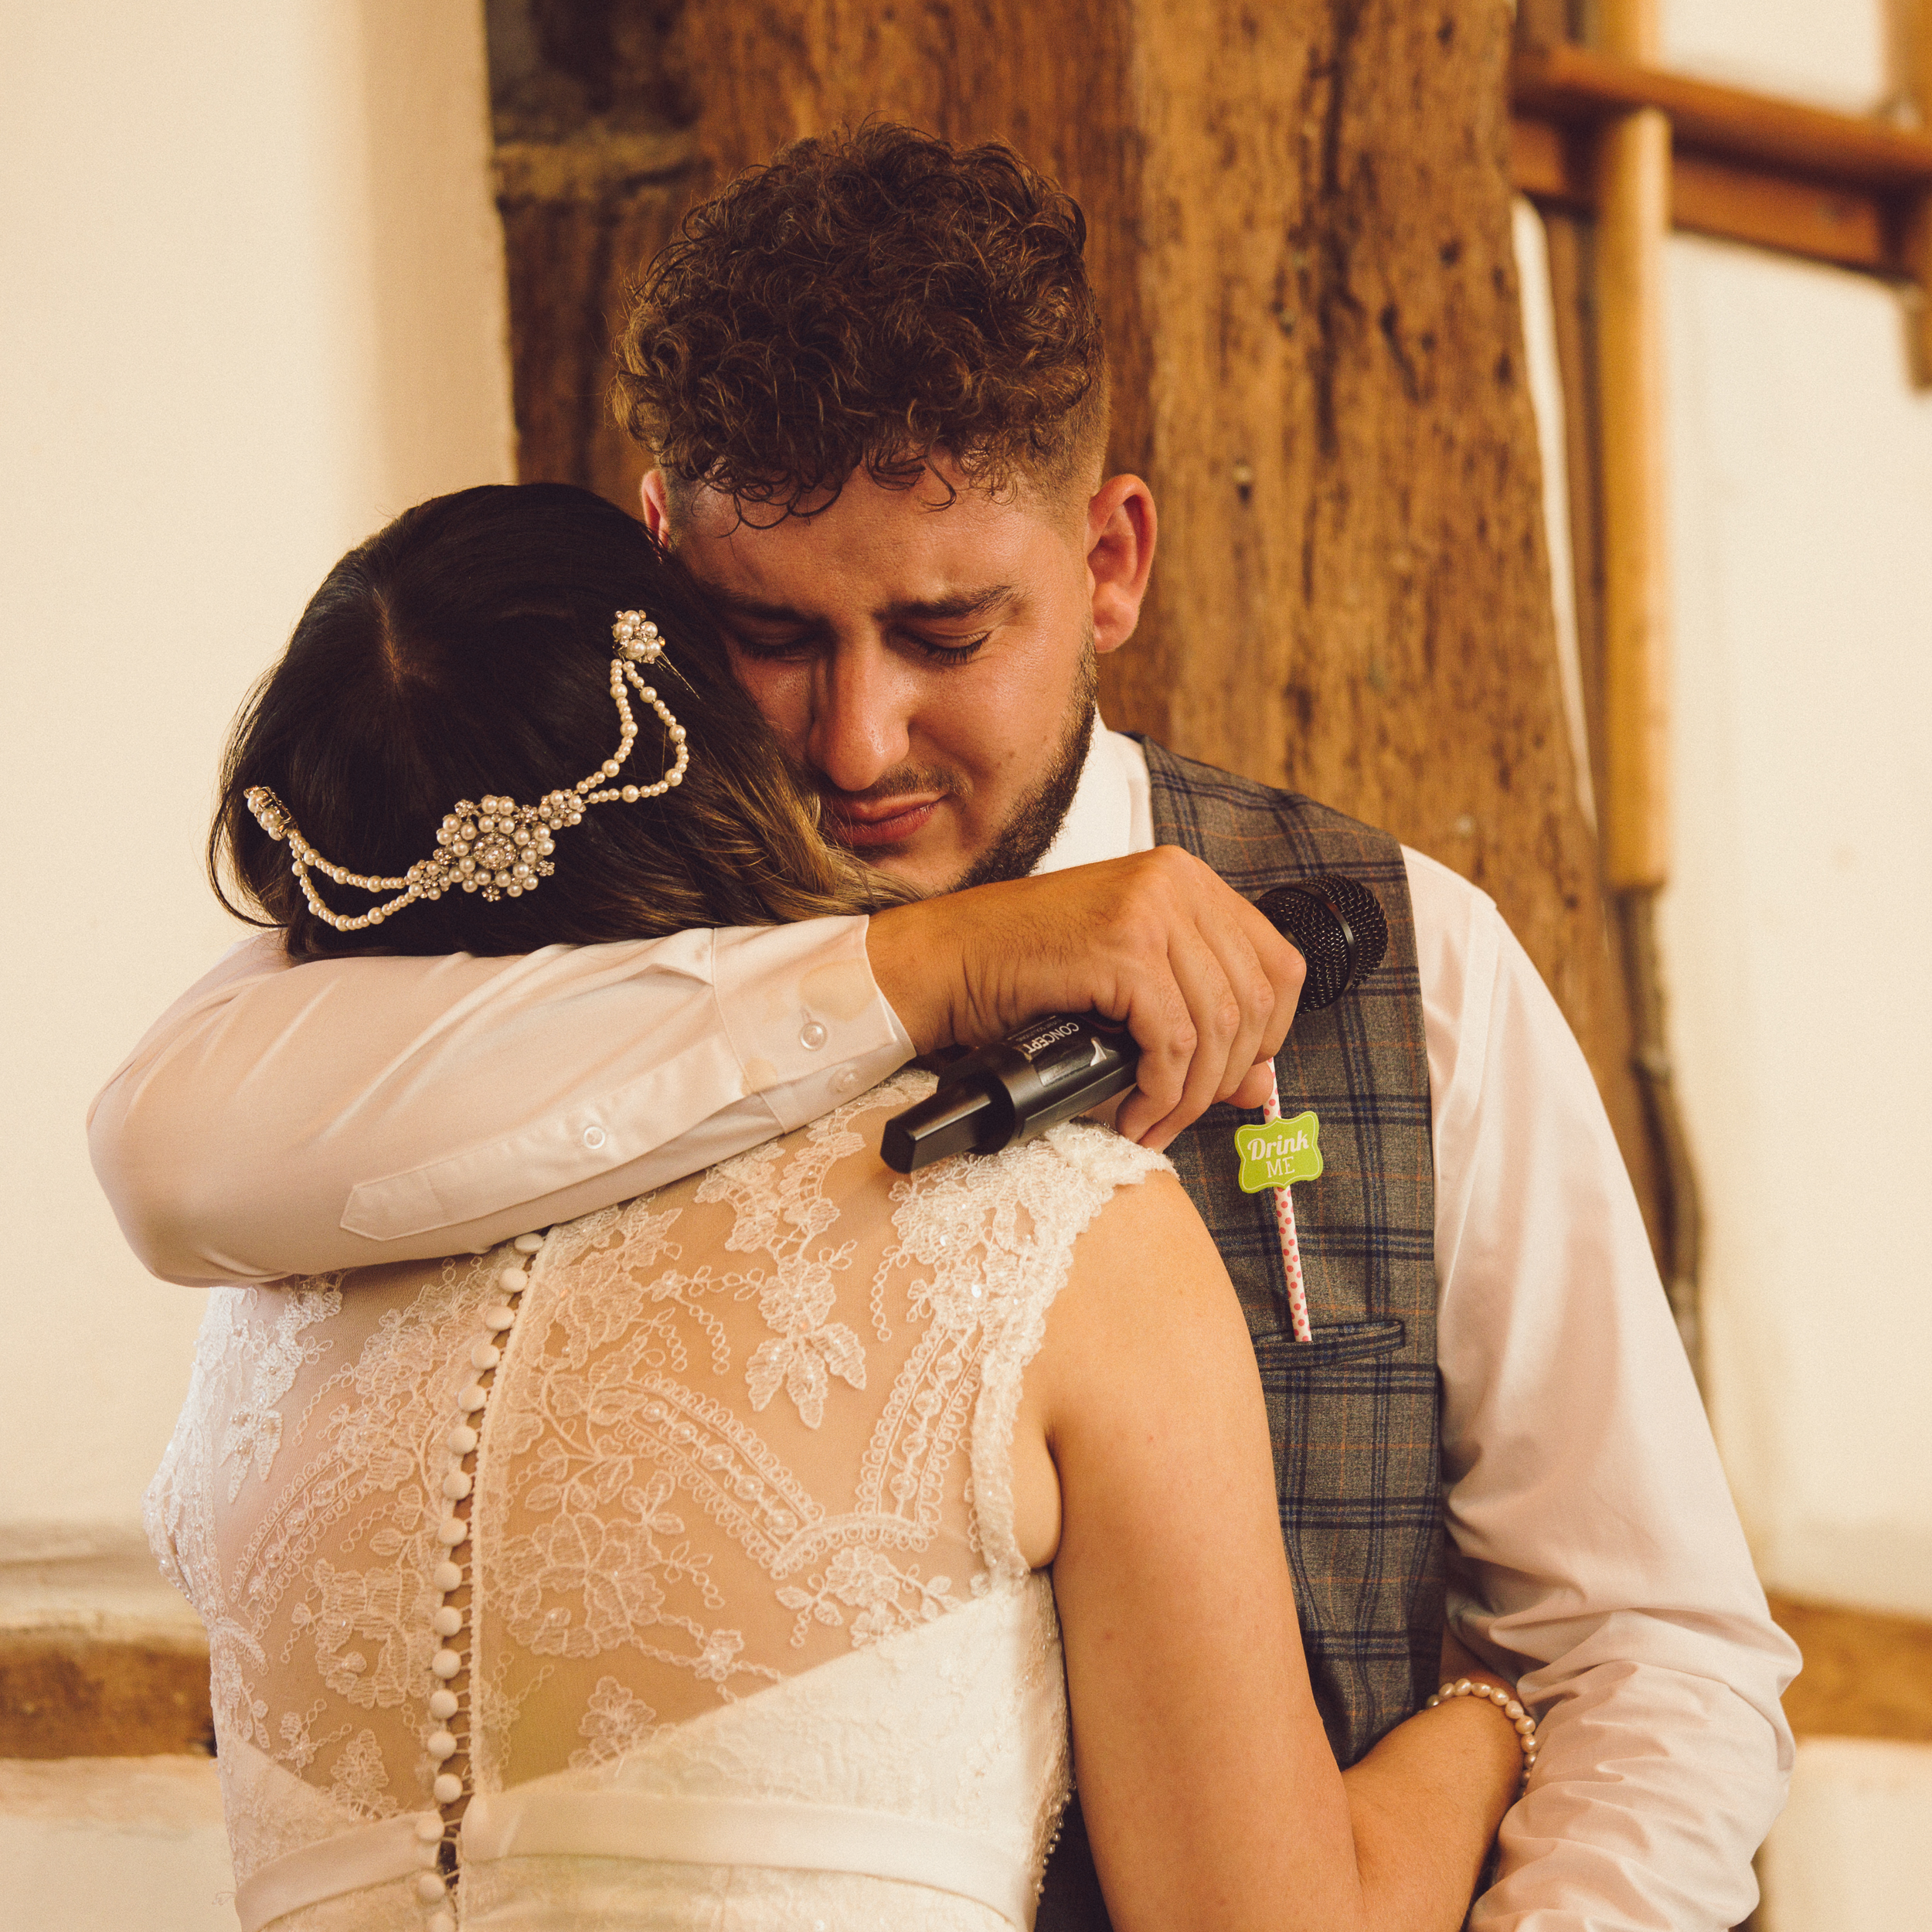 Emotions overflow at the barns hotel wedding of Helen & Charlie